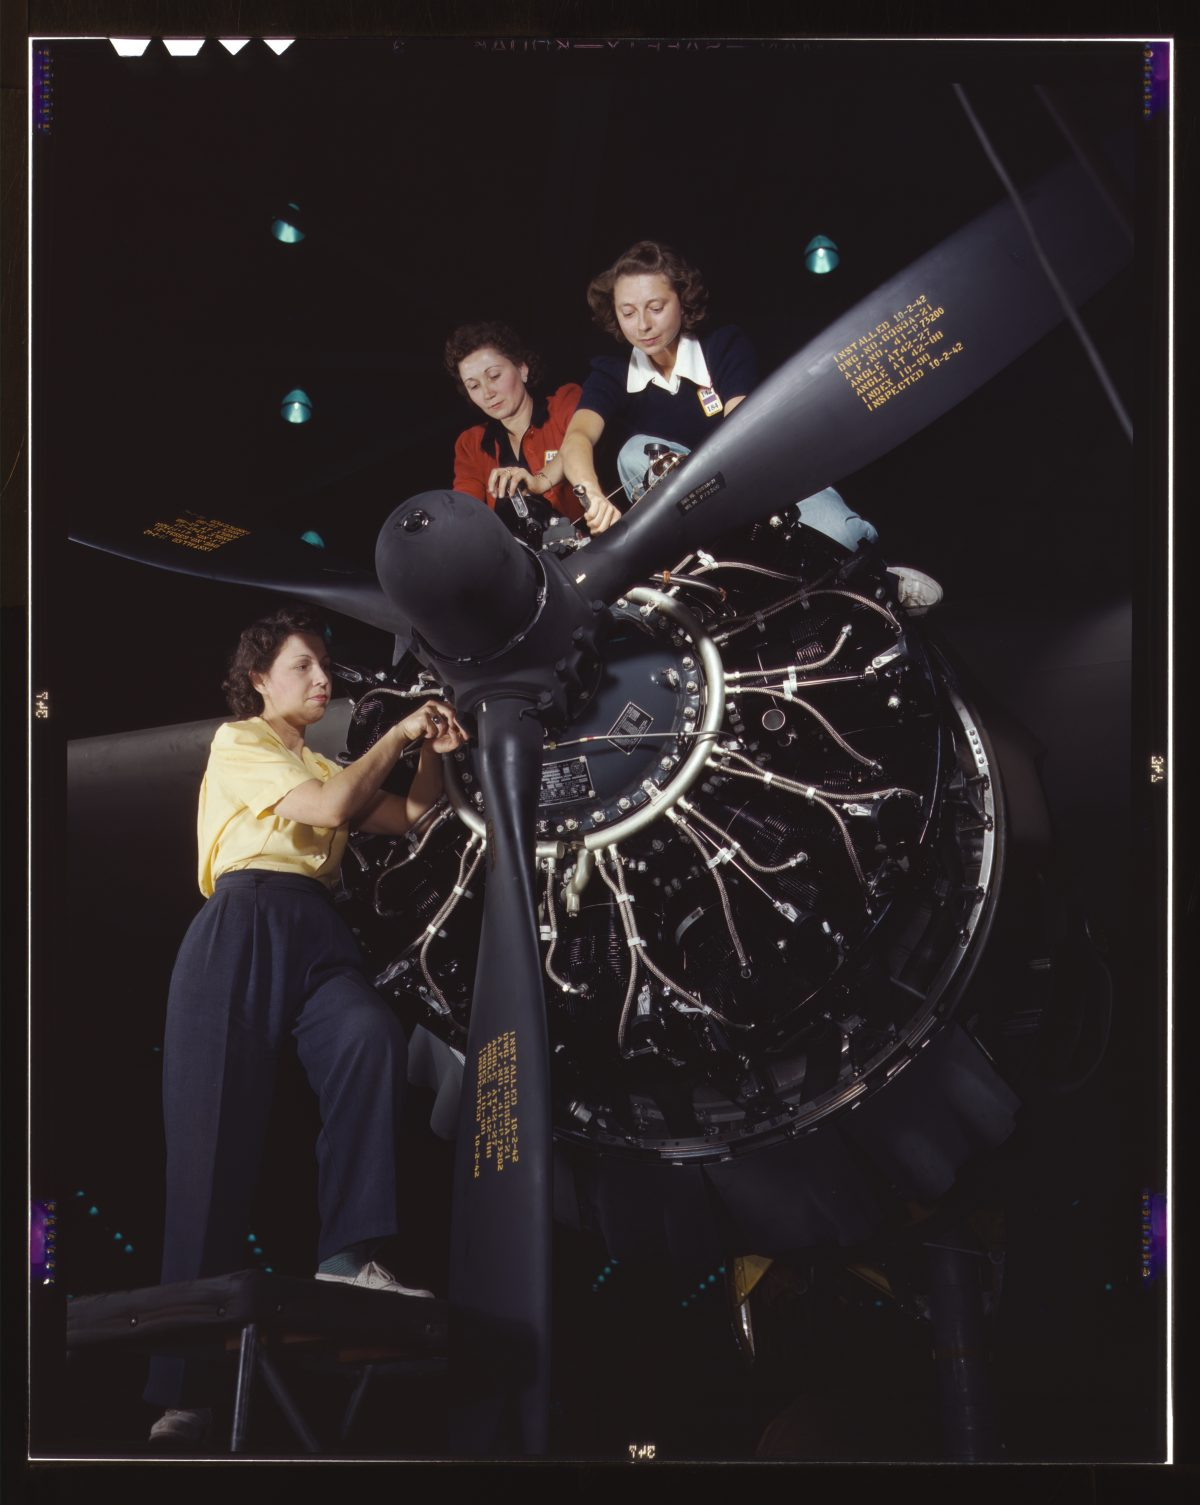 Women In World War 2 working at Douglas Douglas Aircraft Company at Long Beach, California